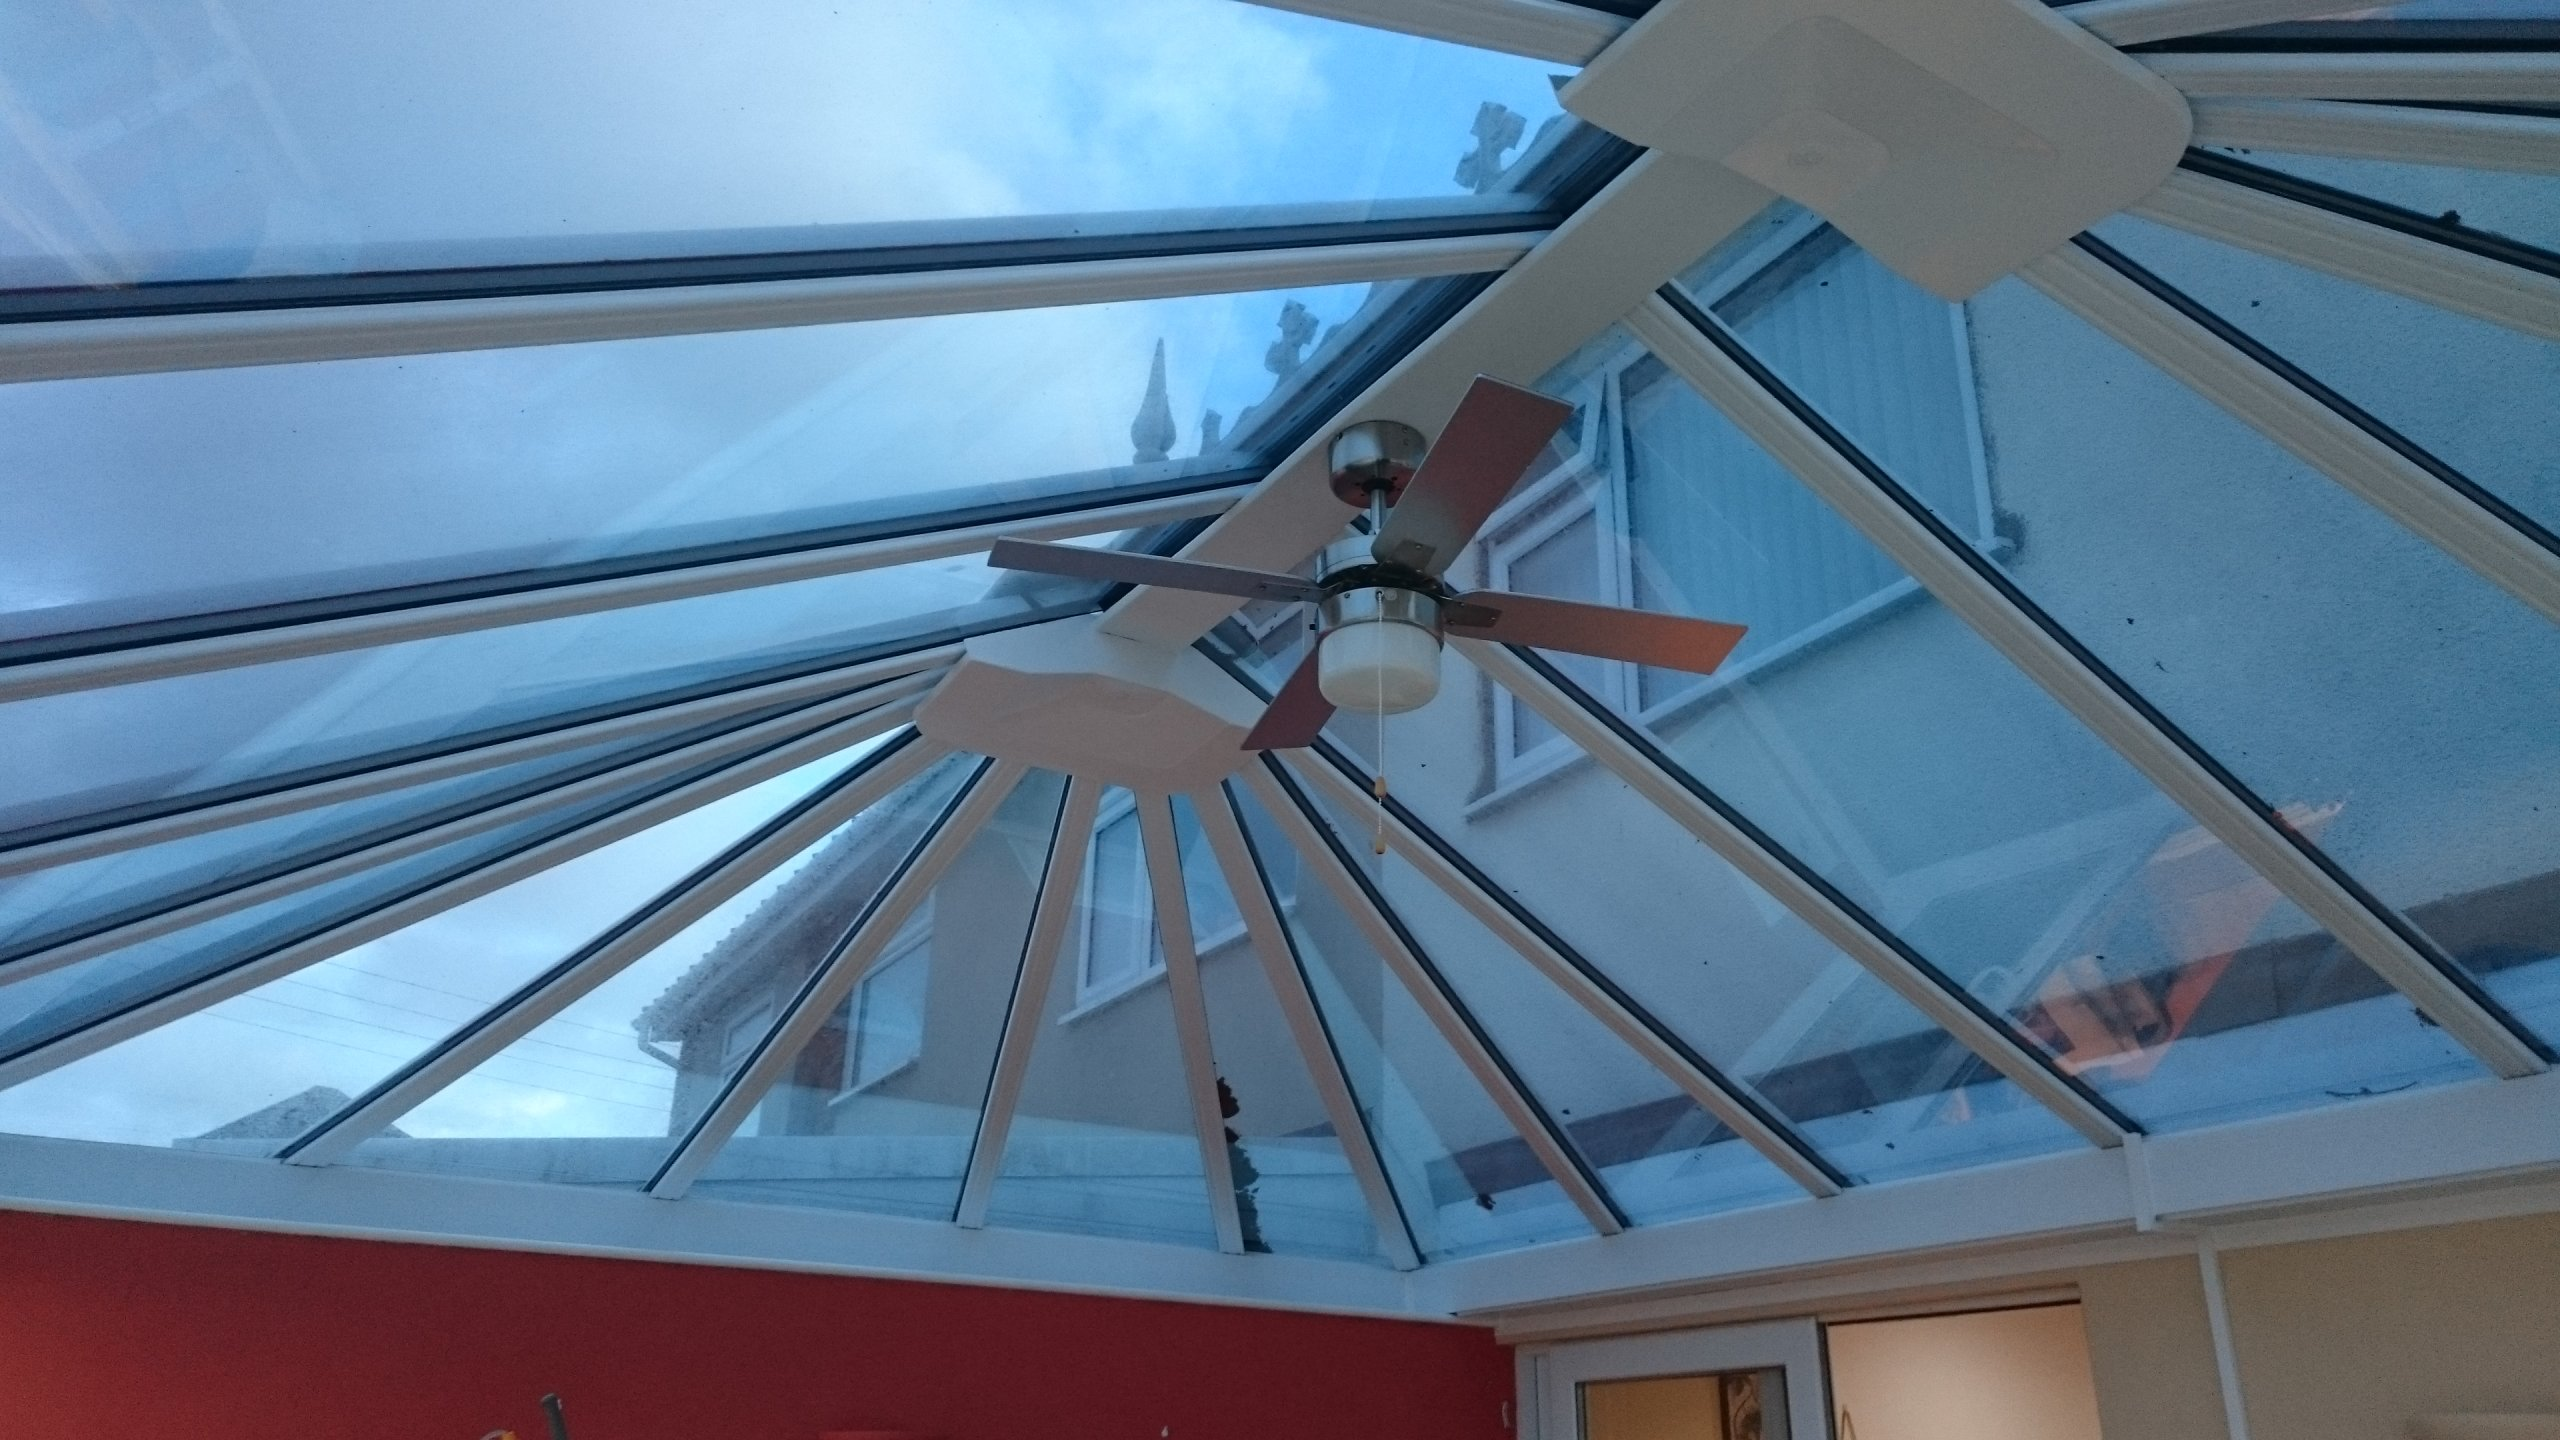 Dual 15 solar window film supplied and fitted to a conservatory roof in Weston-super-Mare. Installation by Tinting Express Barnstaple Devon.